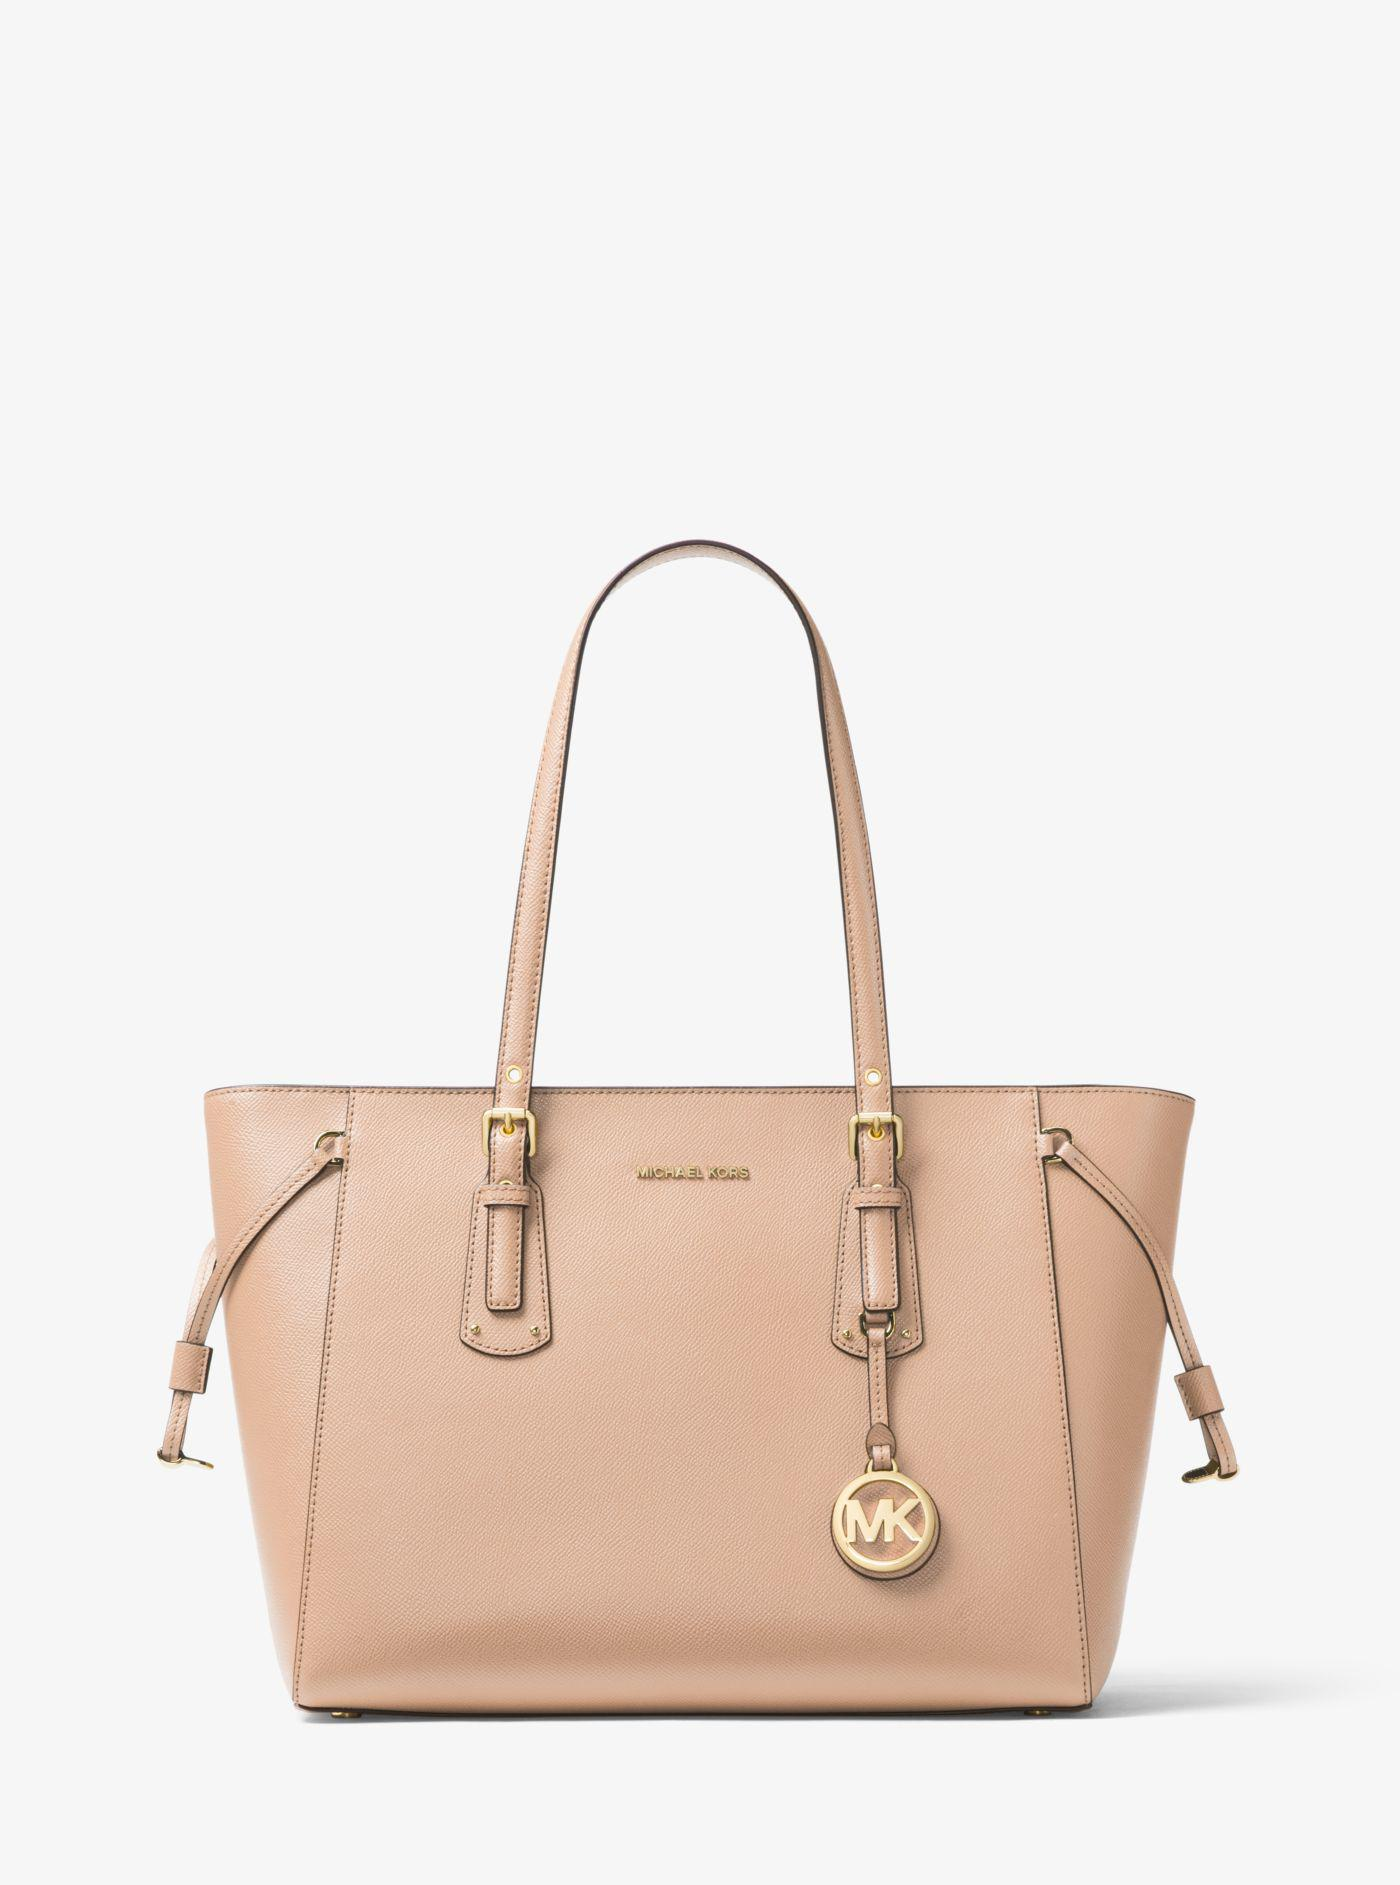 d0a96f9222eed3 Michael Kors - Pink Voyager Medium Leather Tote - Lyst. View fullscreen